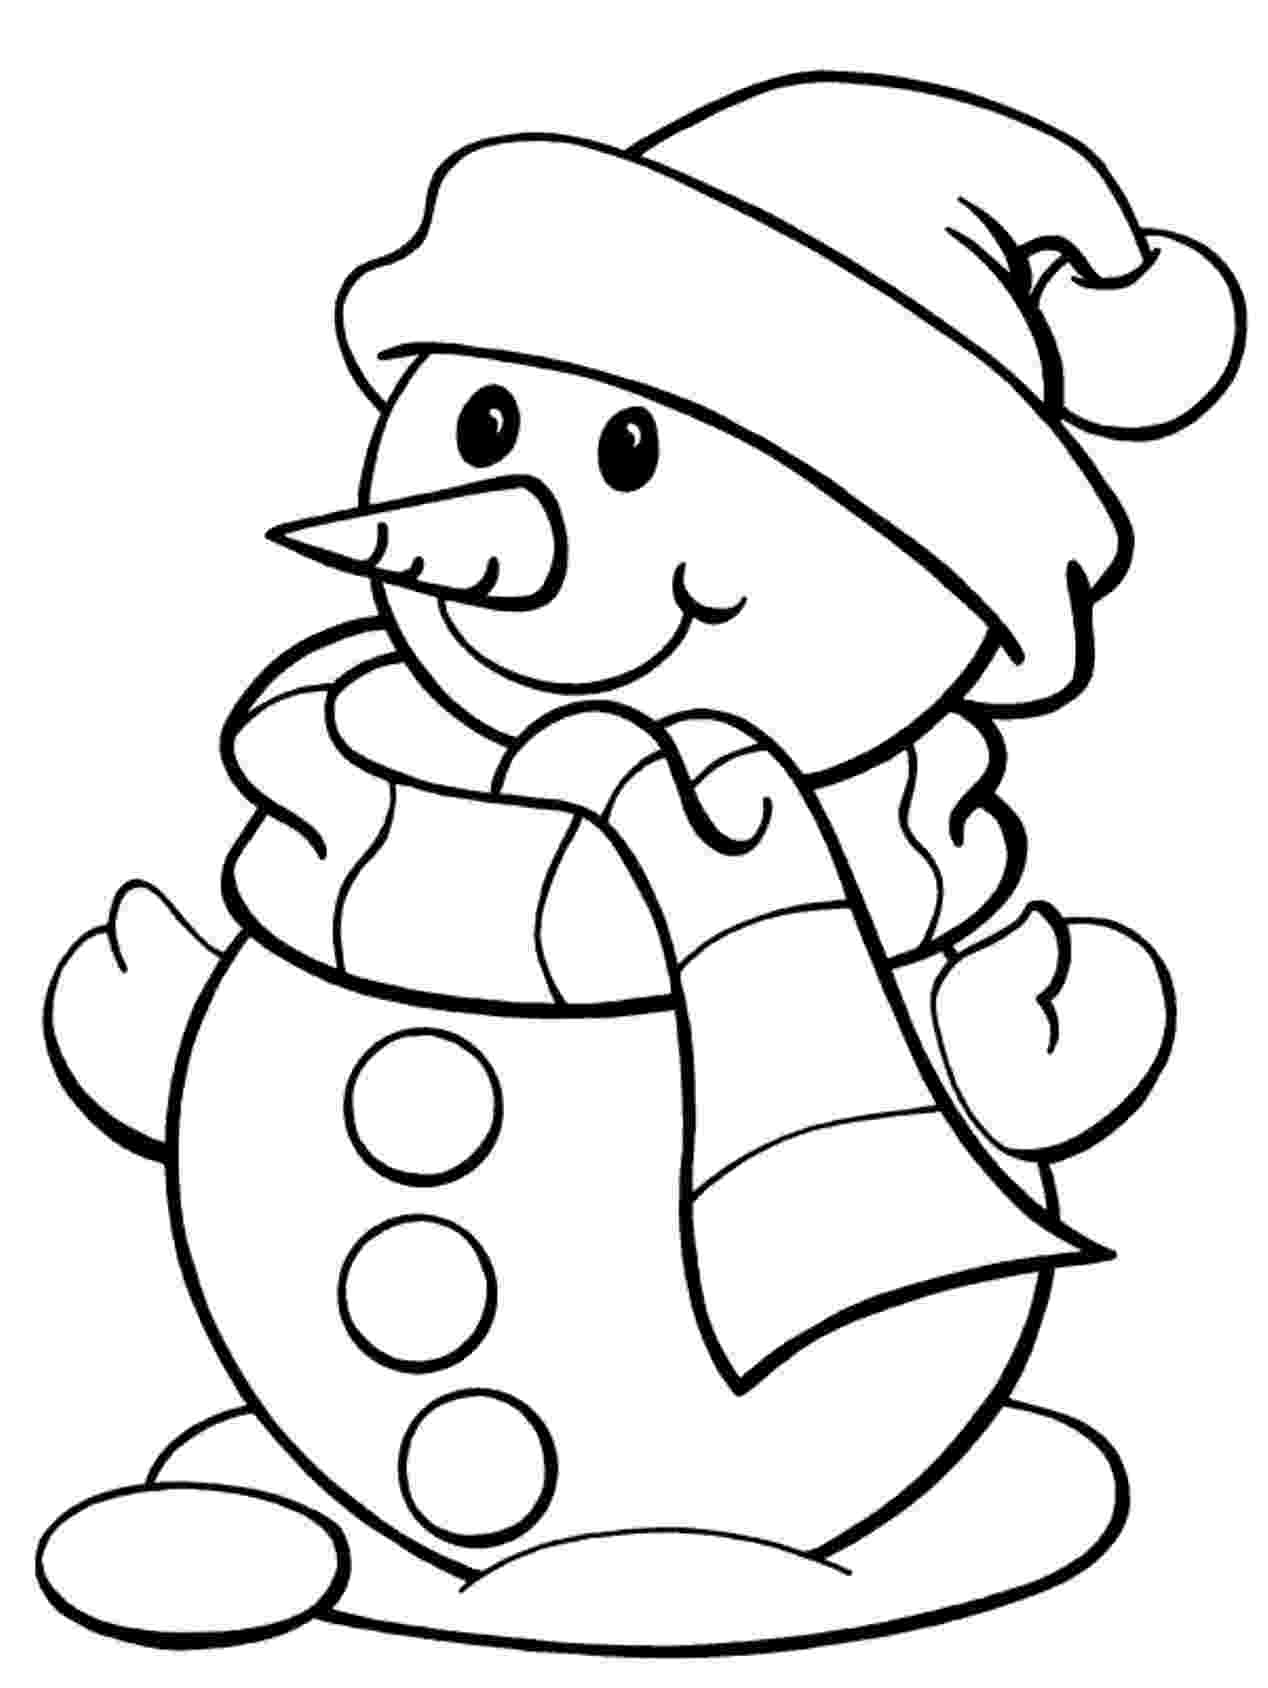 free winter coloring pages printable free printable winter coloring pages winter coloring free printable pages